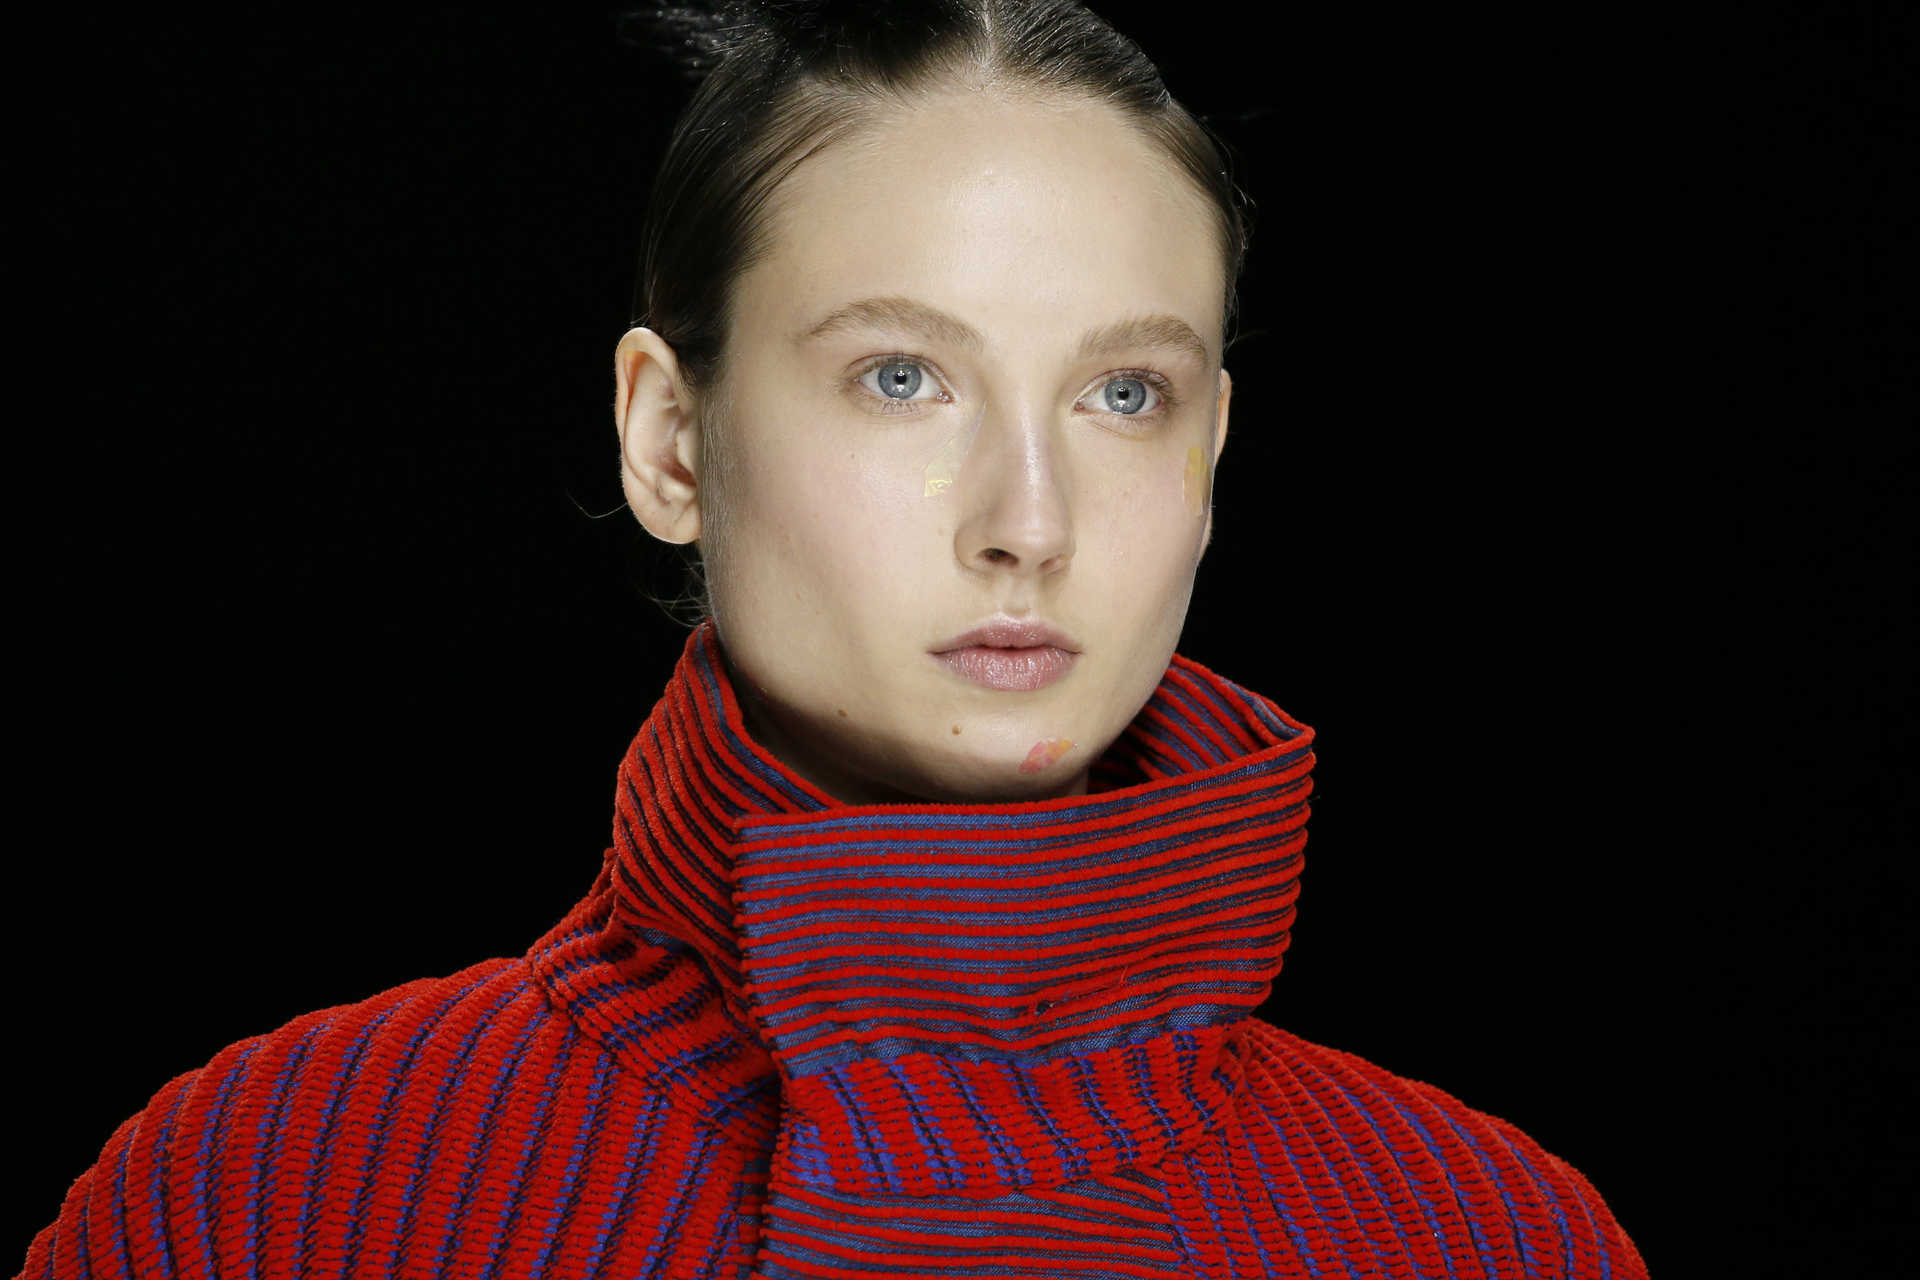 A model presents a creation by Japanese designer Yoshiyuki Miyamae as part of his Fall/Winter 2016/2017 women's ready-to-wear collection for fashion house Issey Miyake in Paris